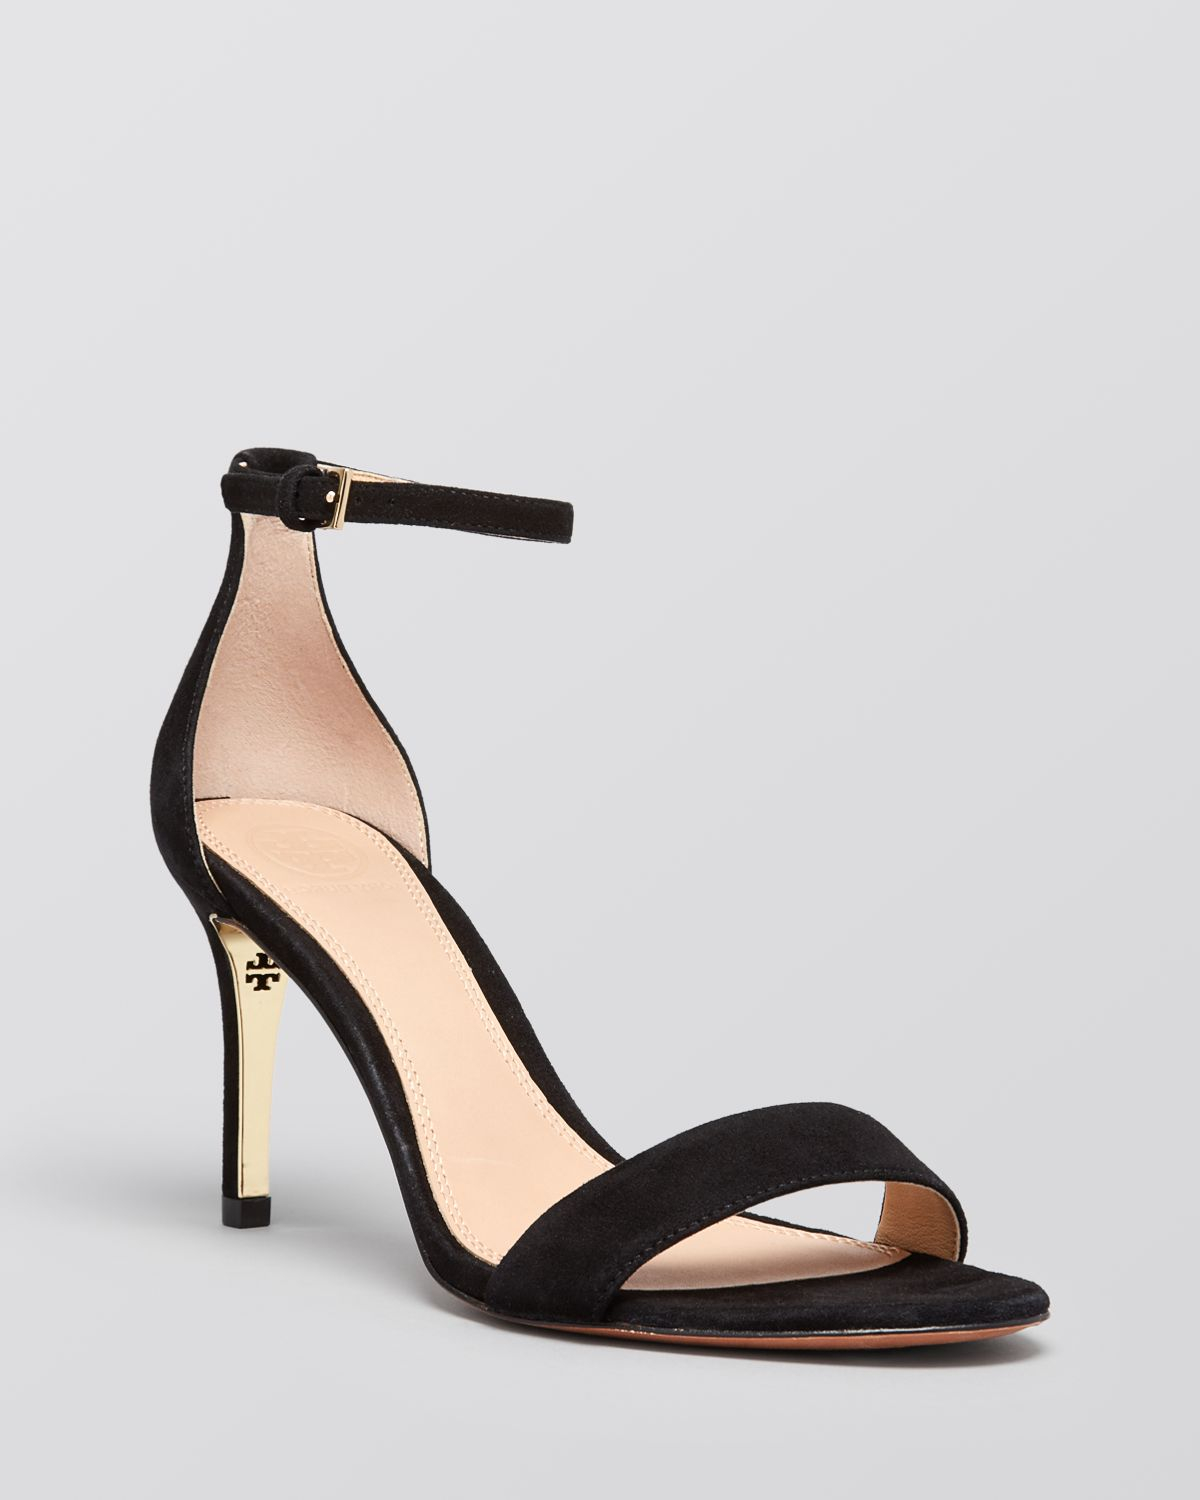 Ankle Strap Sandals High Heel